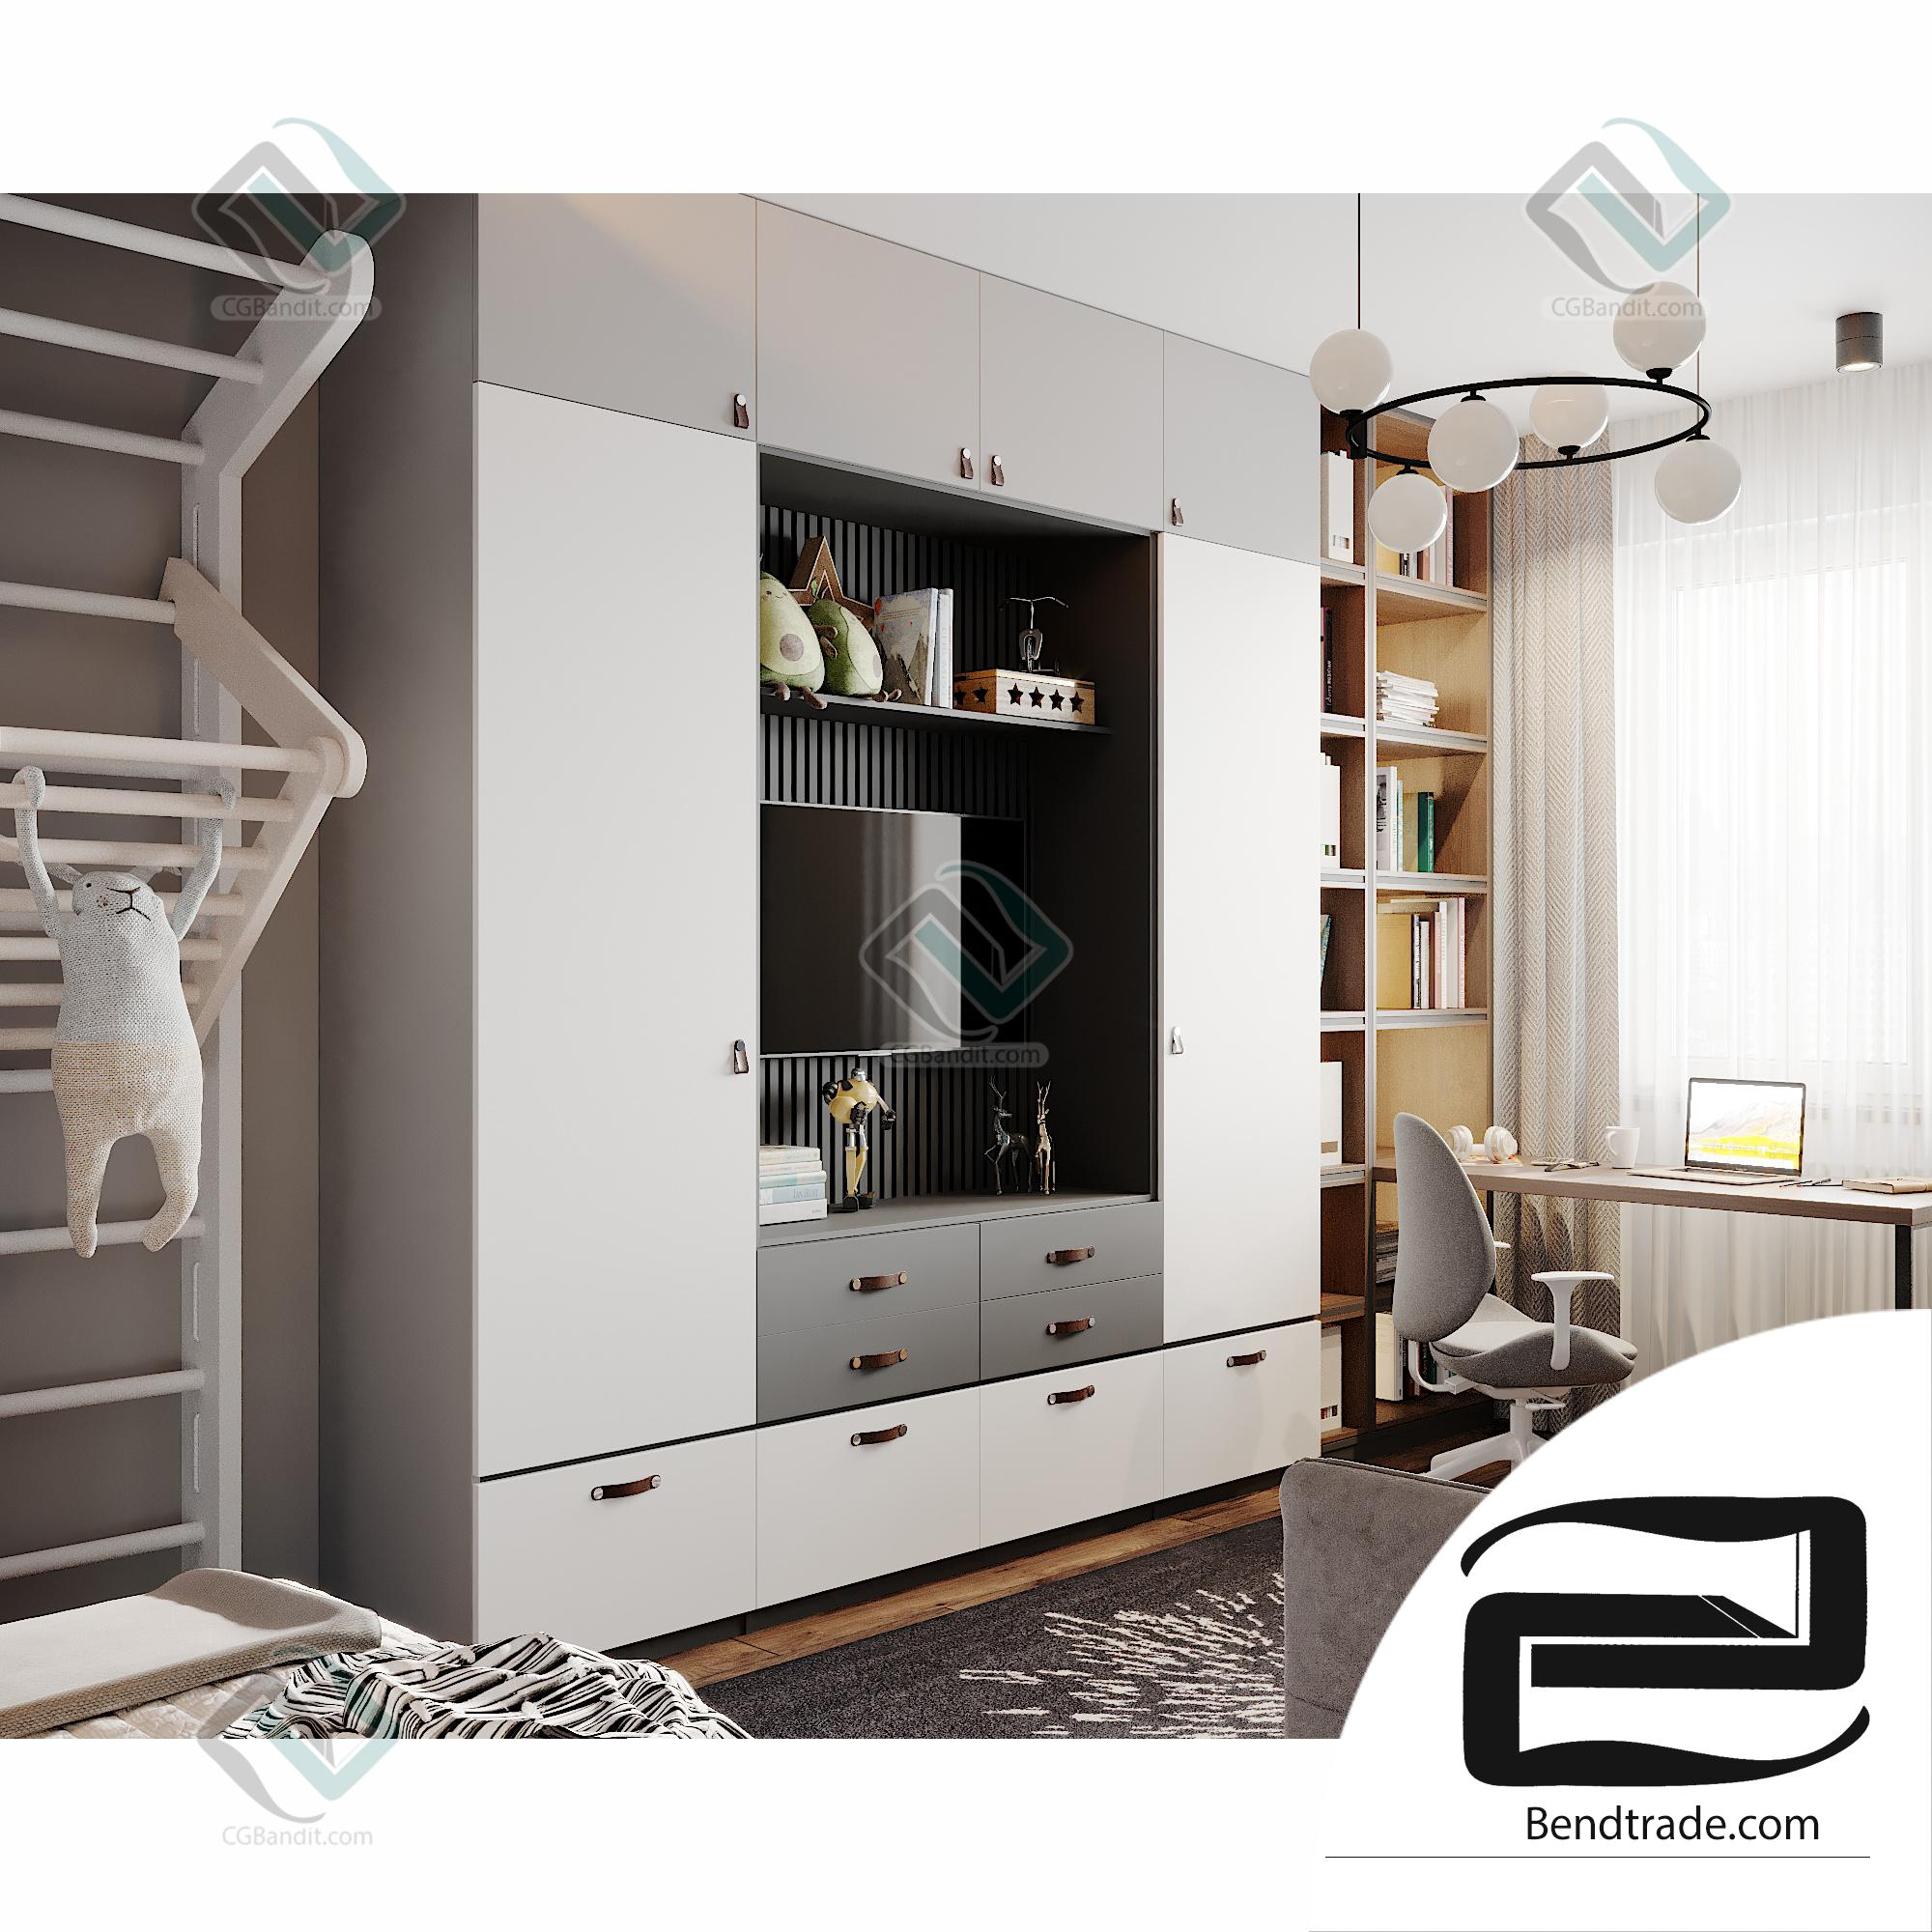 Teenager room Bendtrade 3D scene interior corona render